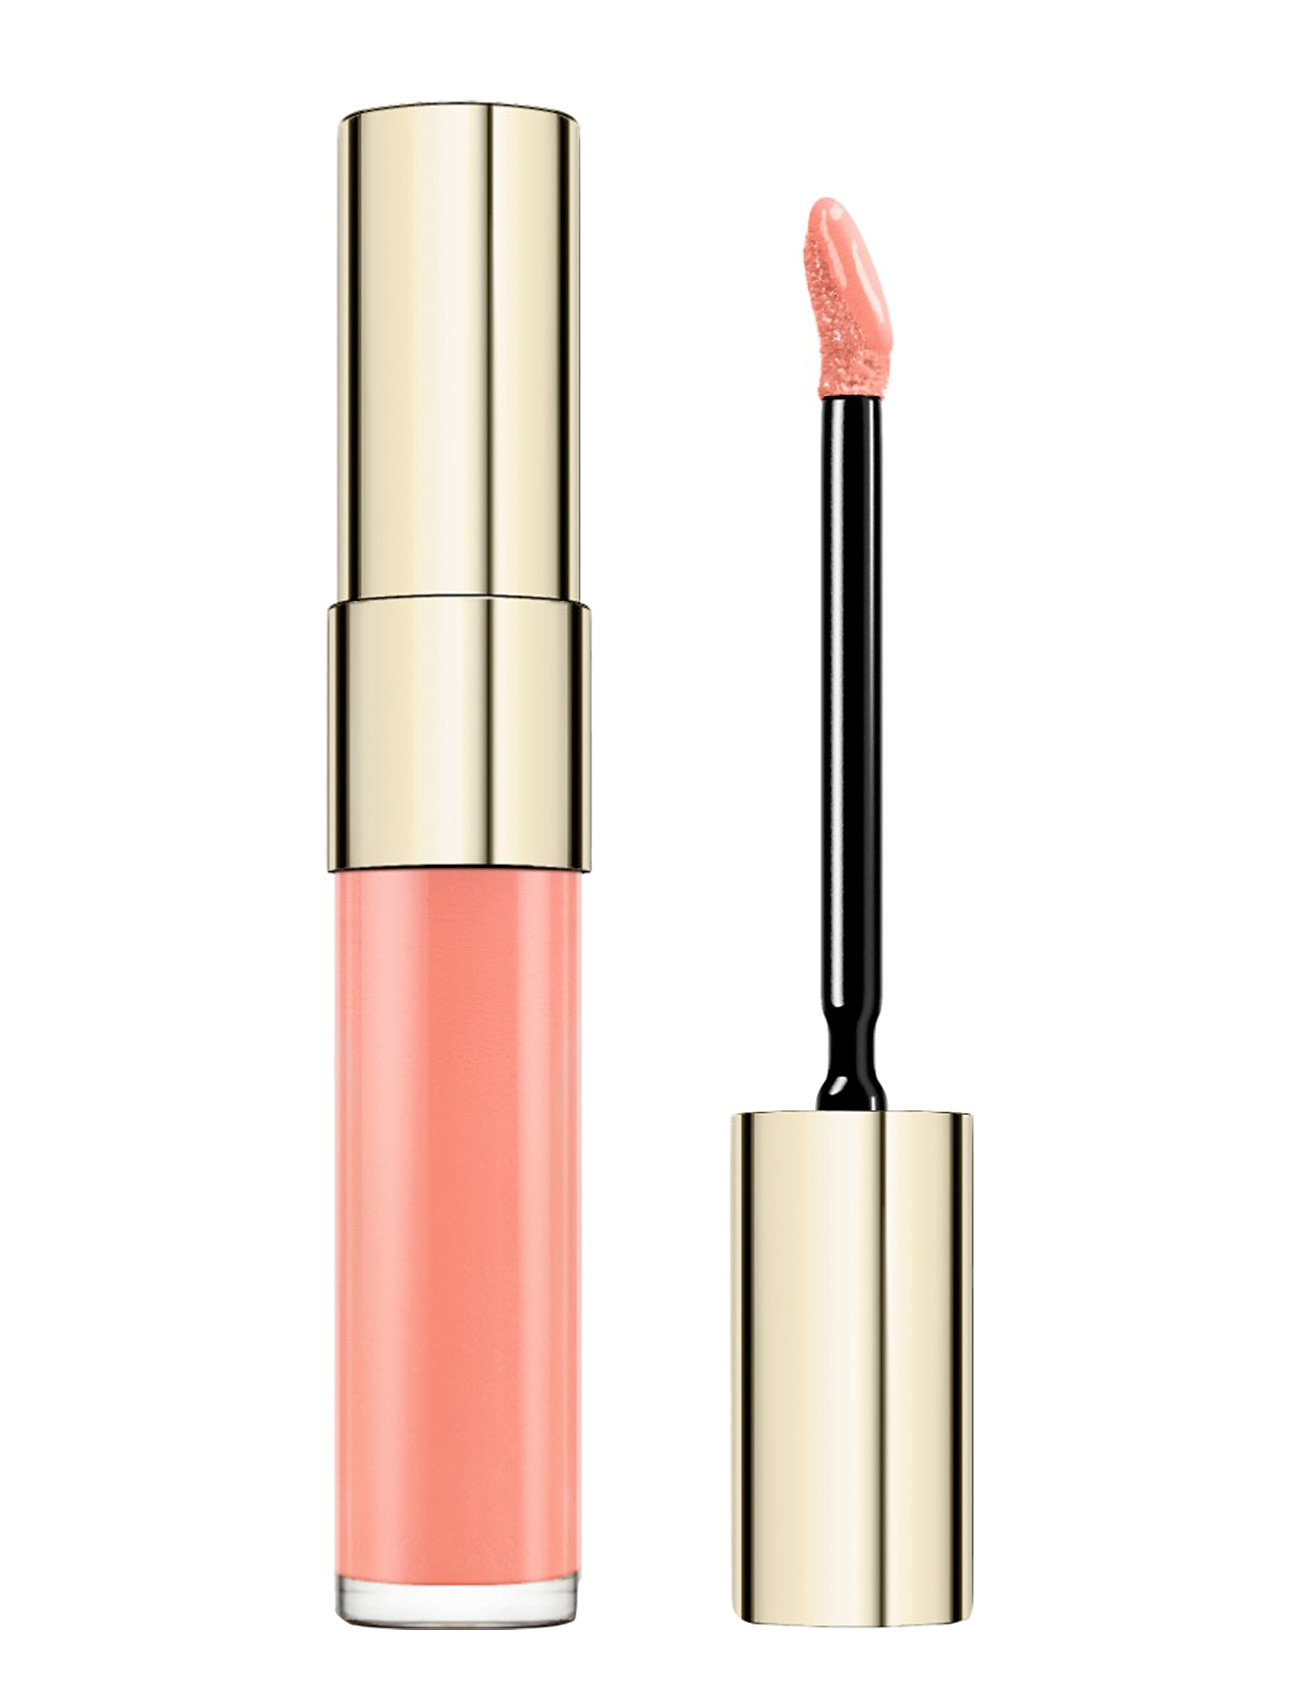 Image of Illumination Lips 03 Lipgloss Makeup Beige Helena Rubinstein (3069875523)